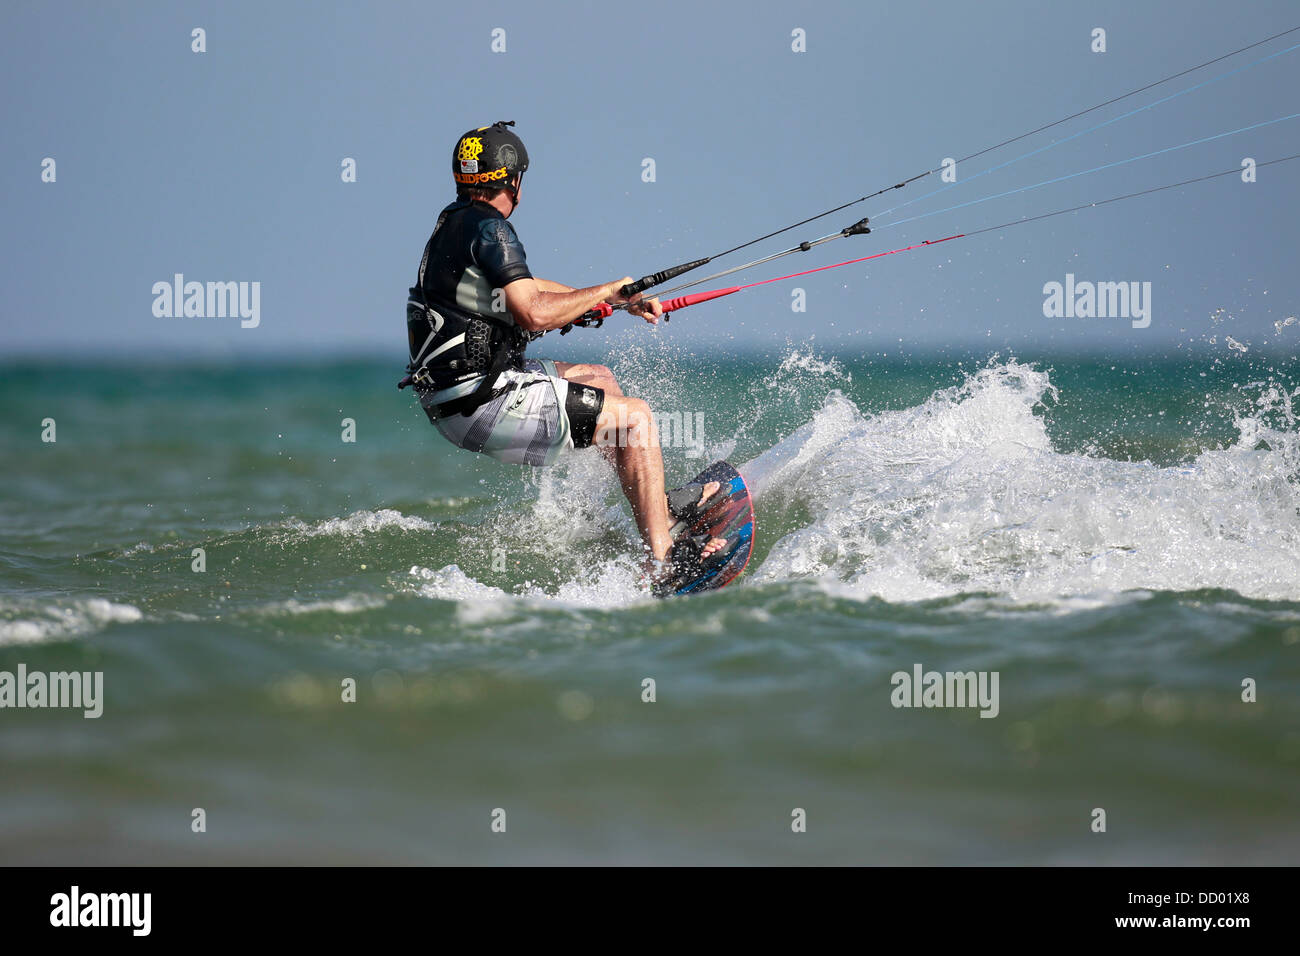 A kiteboarder heading offshore on a lake. Stock Photo